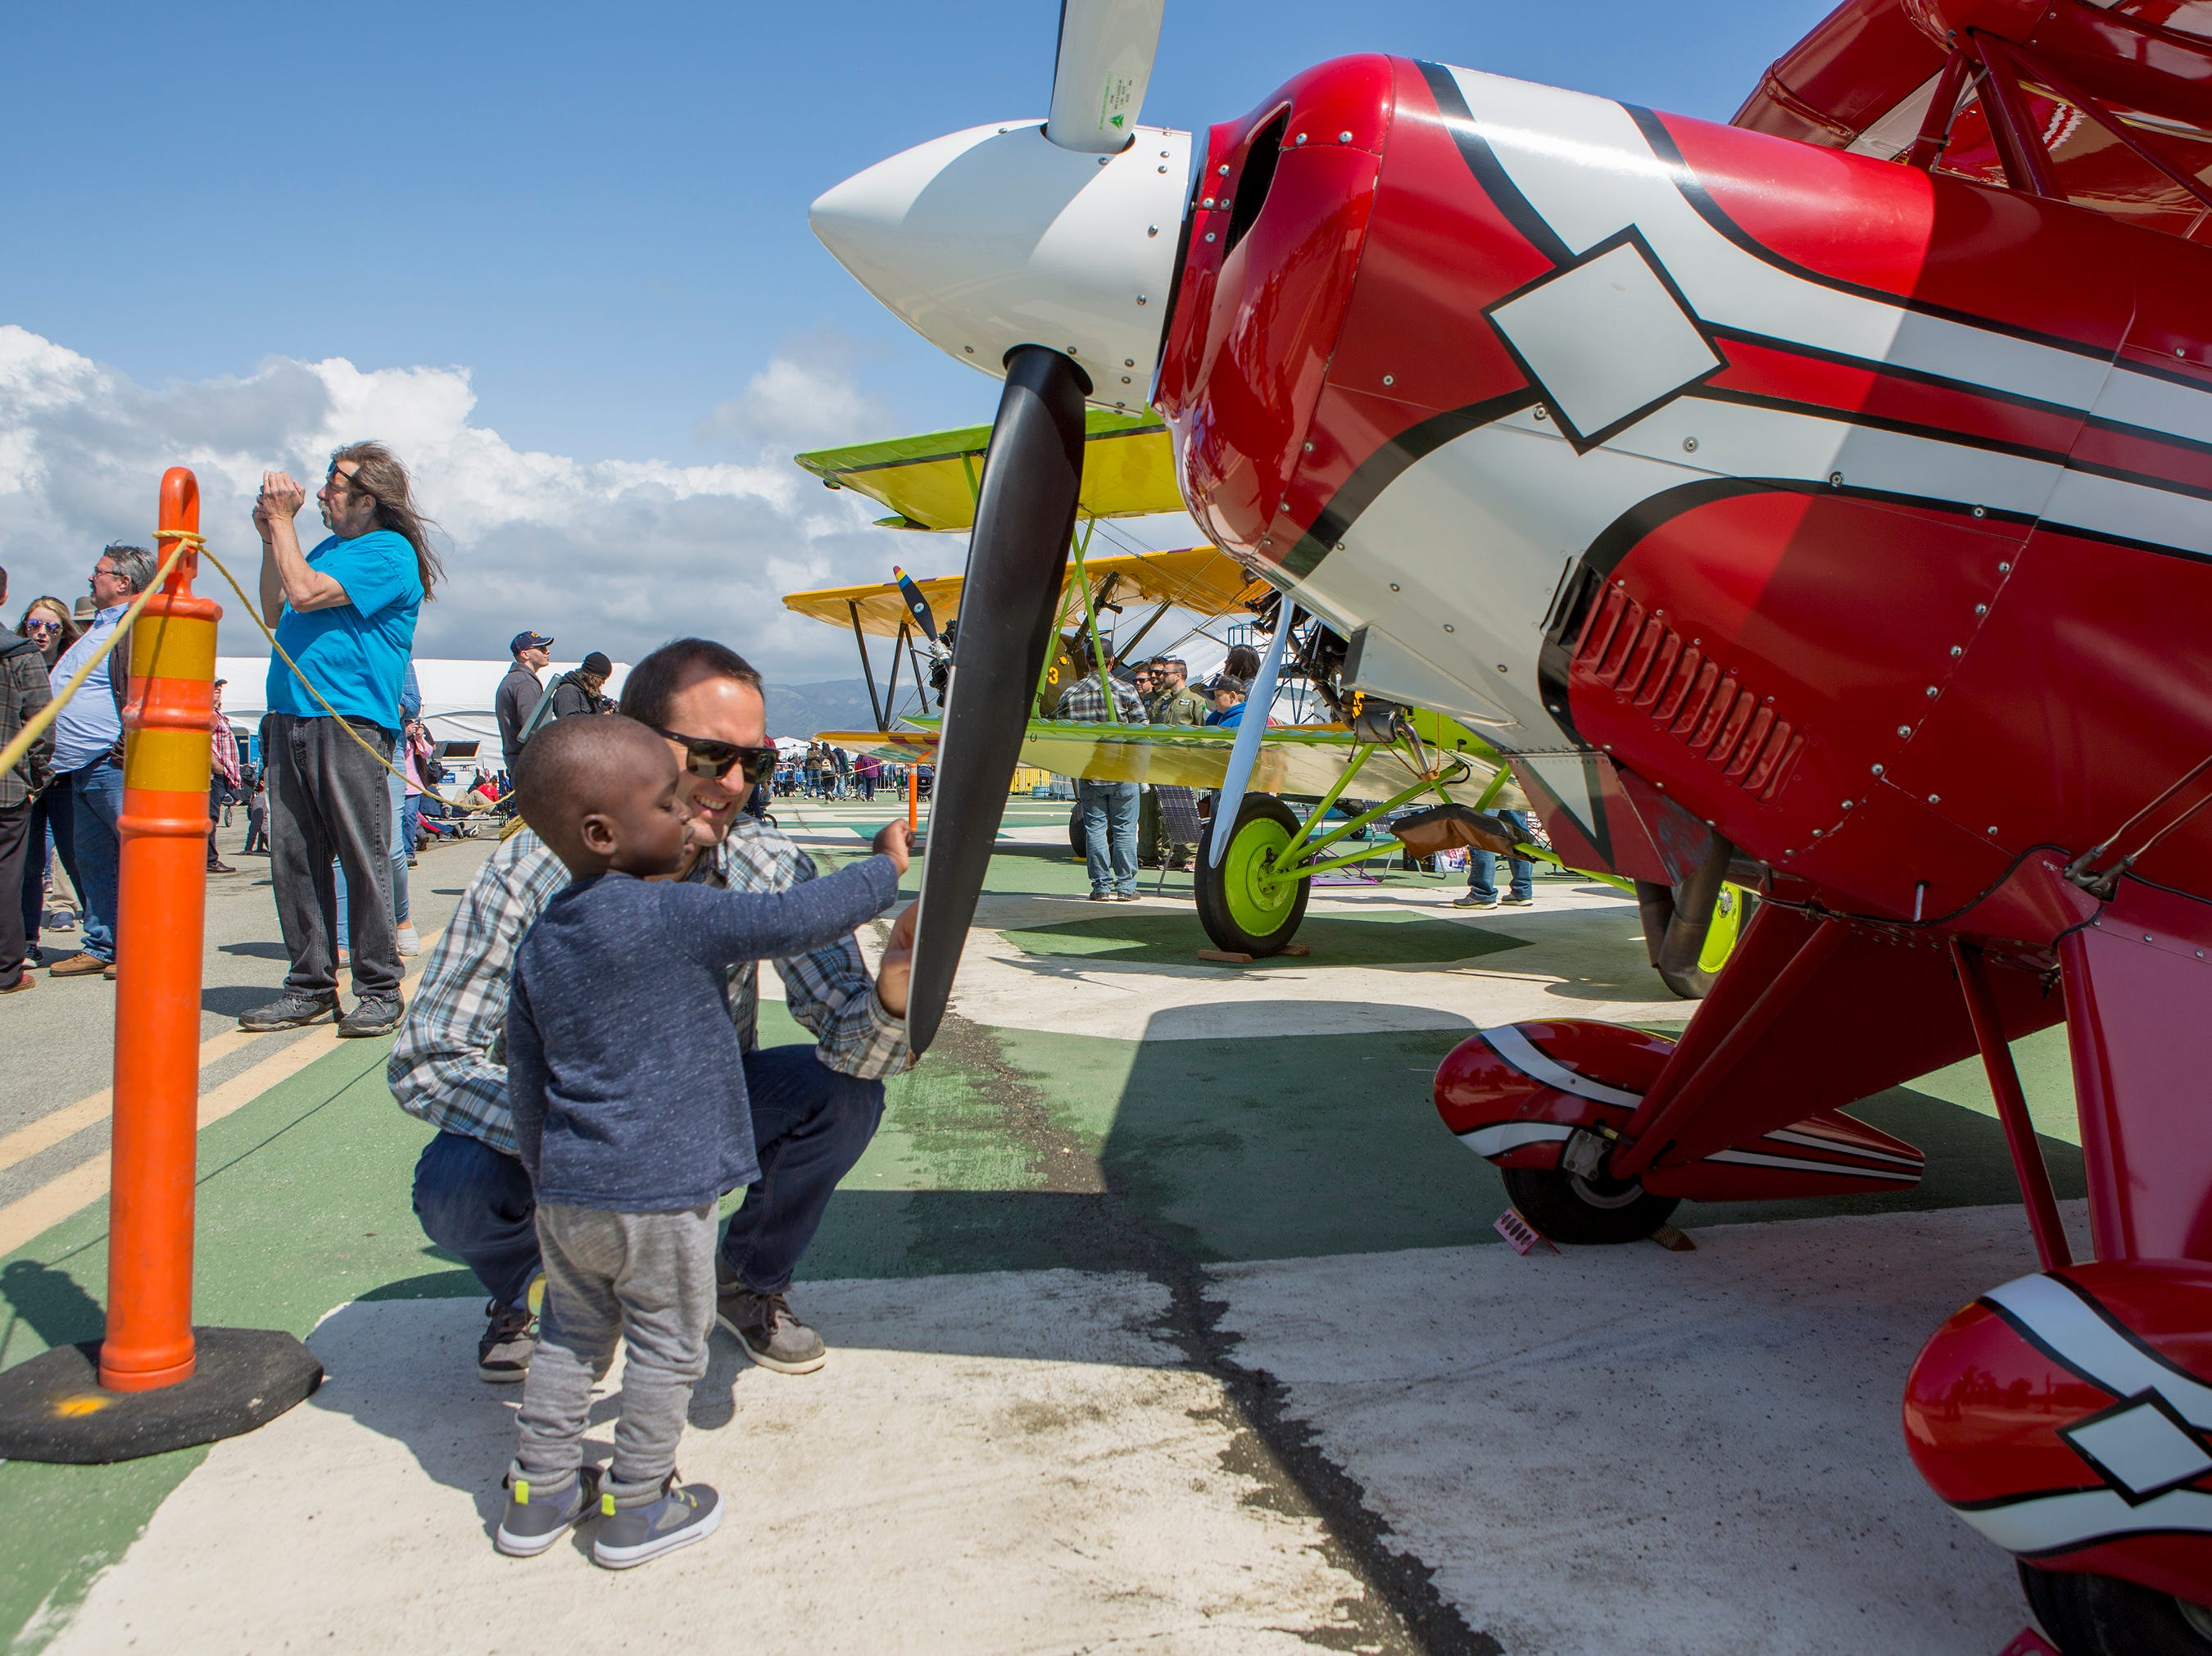 Brian Boitano and his son Augusto, 2, check out the propeller on a Pitts S-2B at the California International Airshow Salinas at the Salinas Airport on March 23, 2019. (Photo by David Royal)